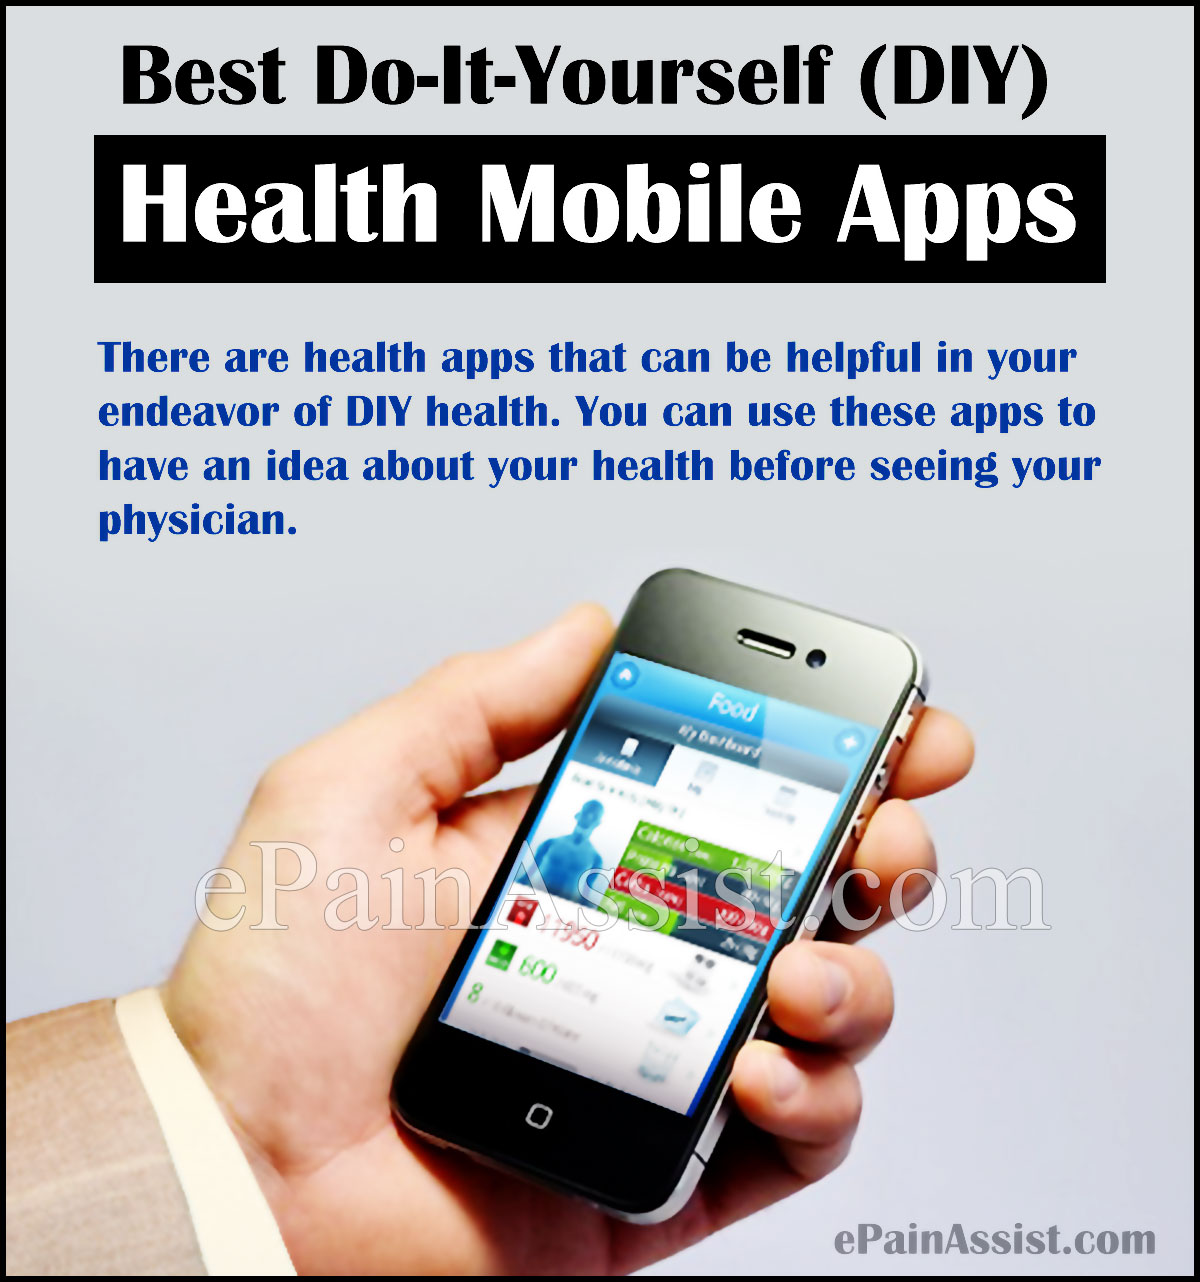 best do it yourself diy health mobile apps